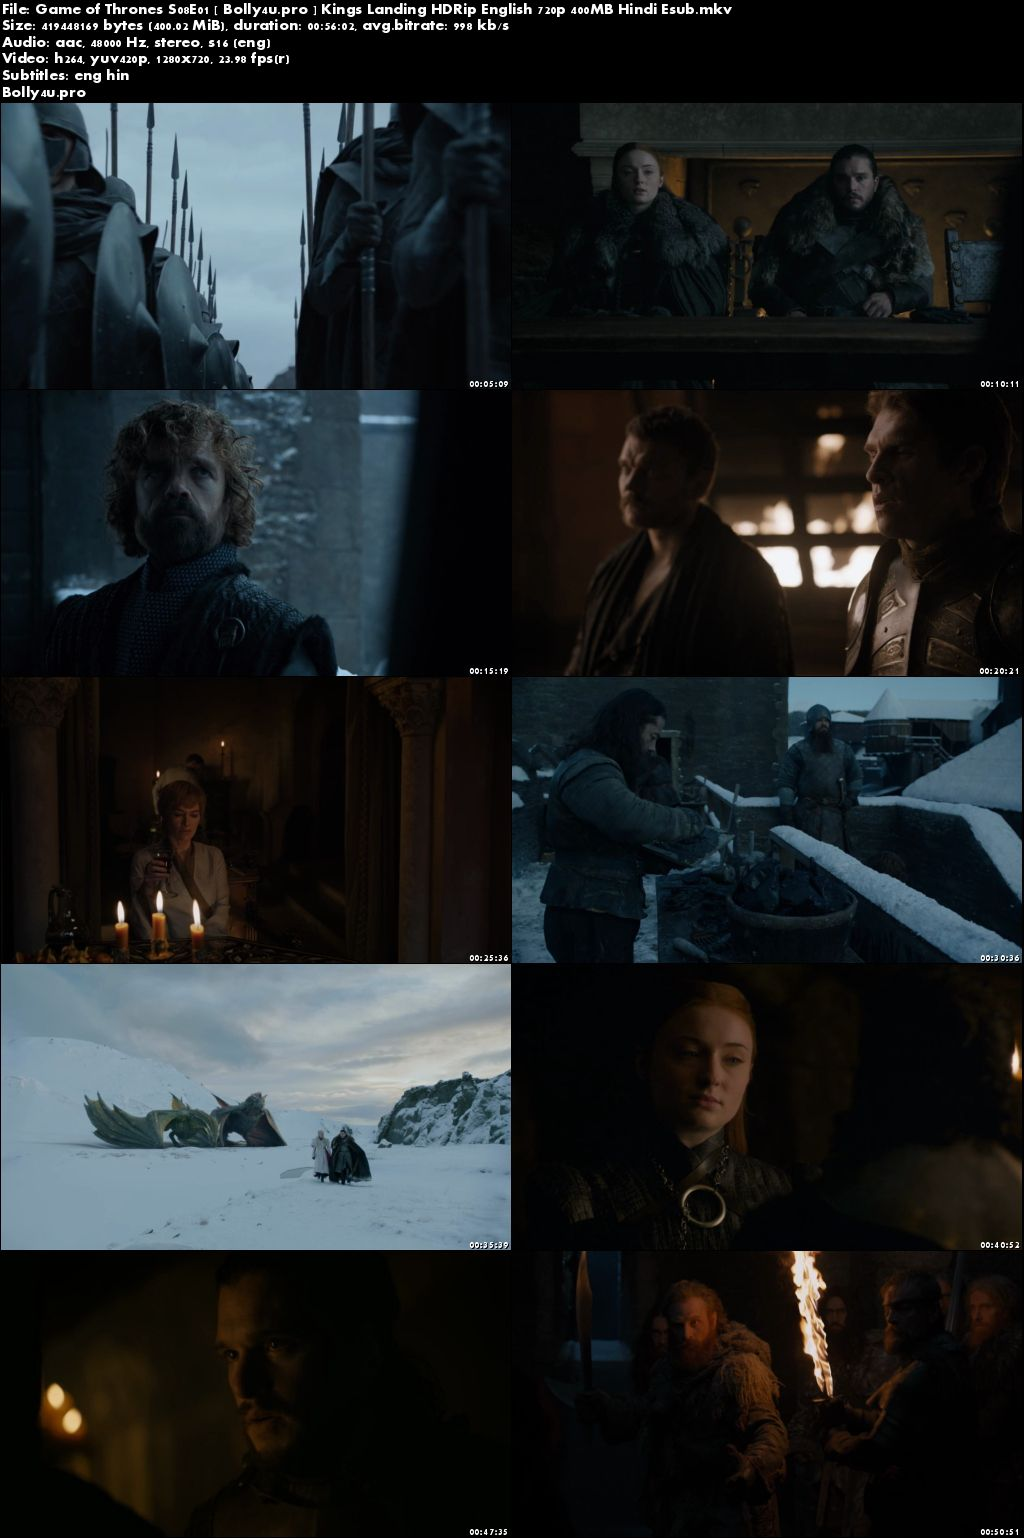 Game of Thrones S08E01 Kings Landing WEB-DL 400MB English 720p Hindi ESub Download